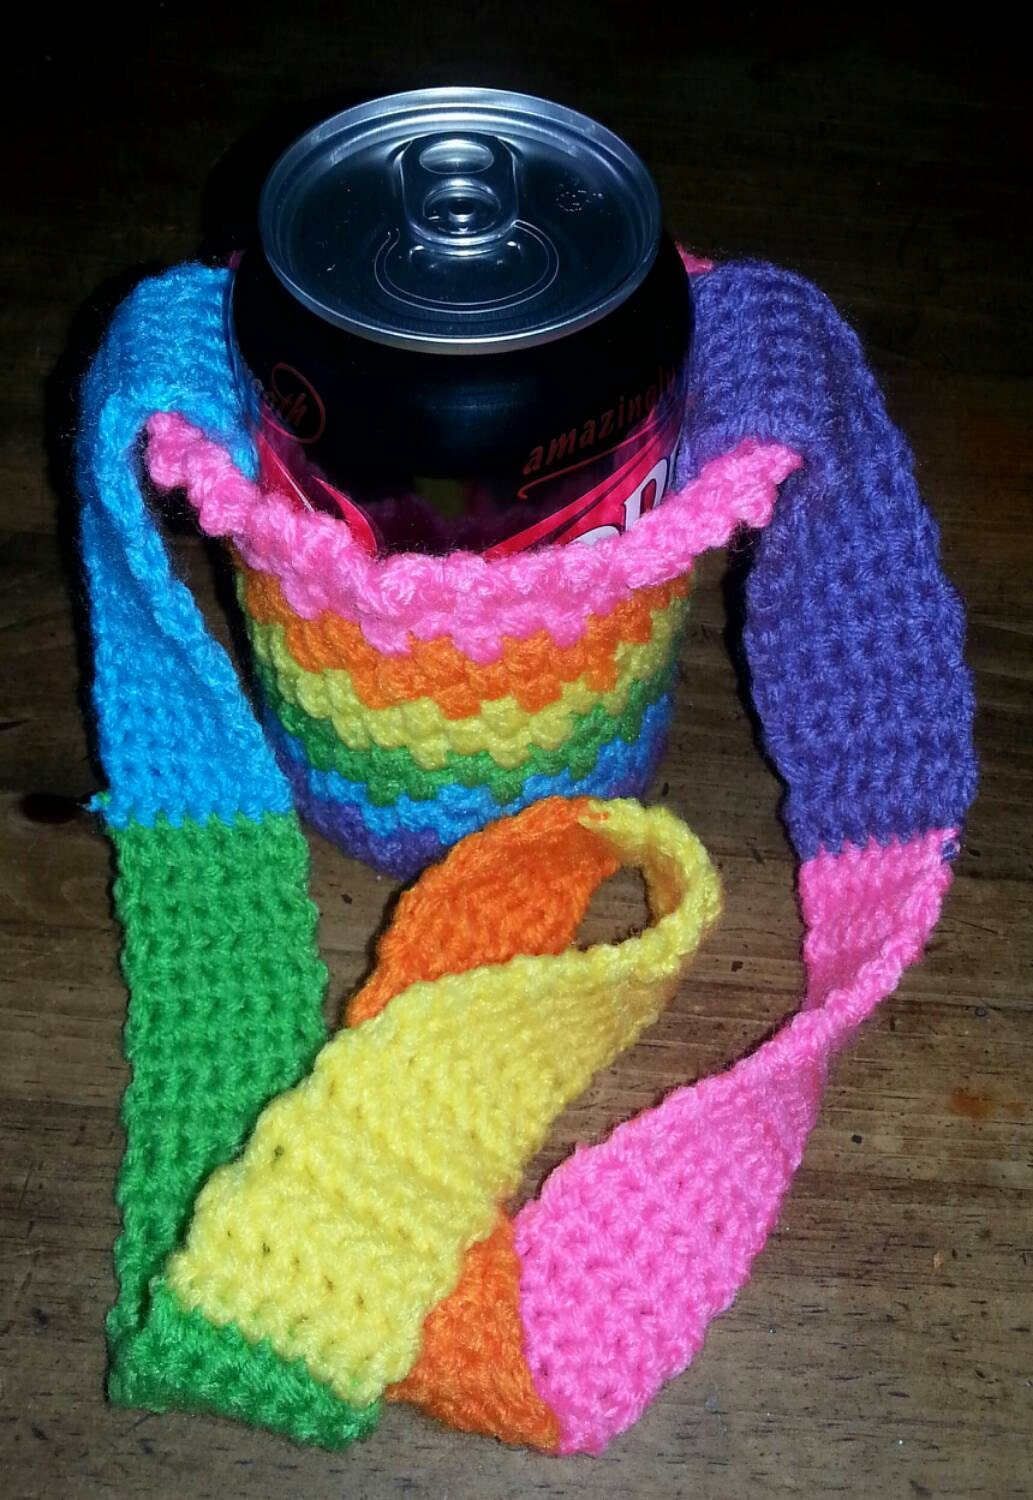 Crochet Patterns For Koozies : Unavailable Listing on Etsy